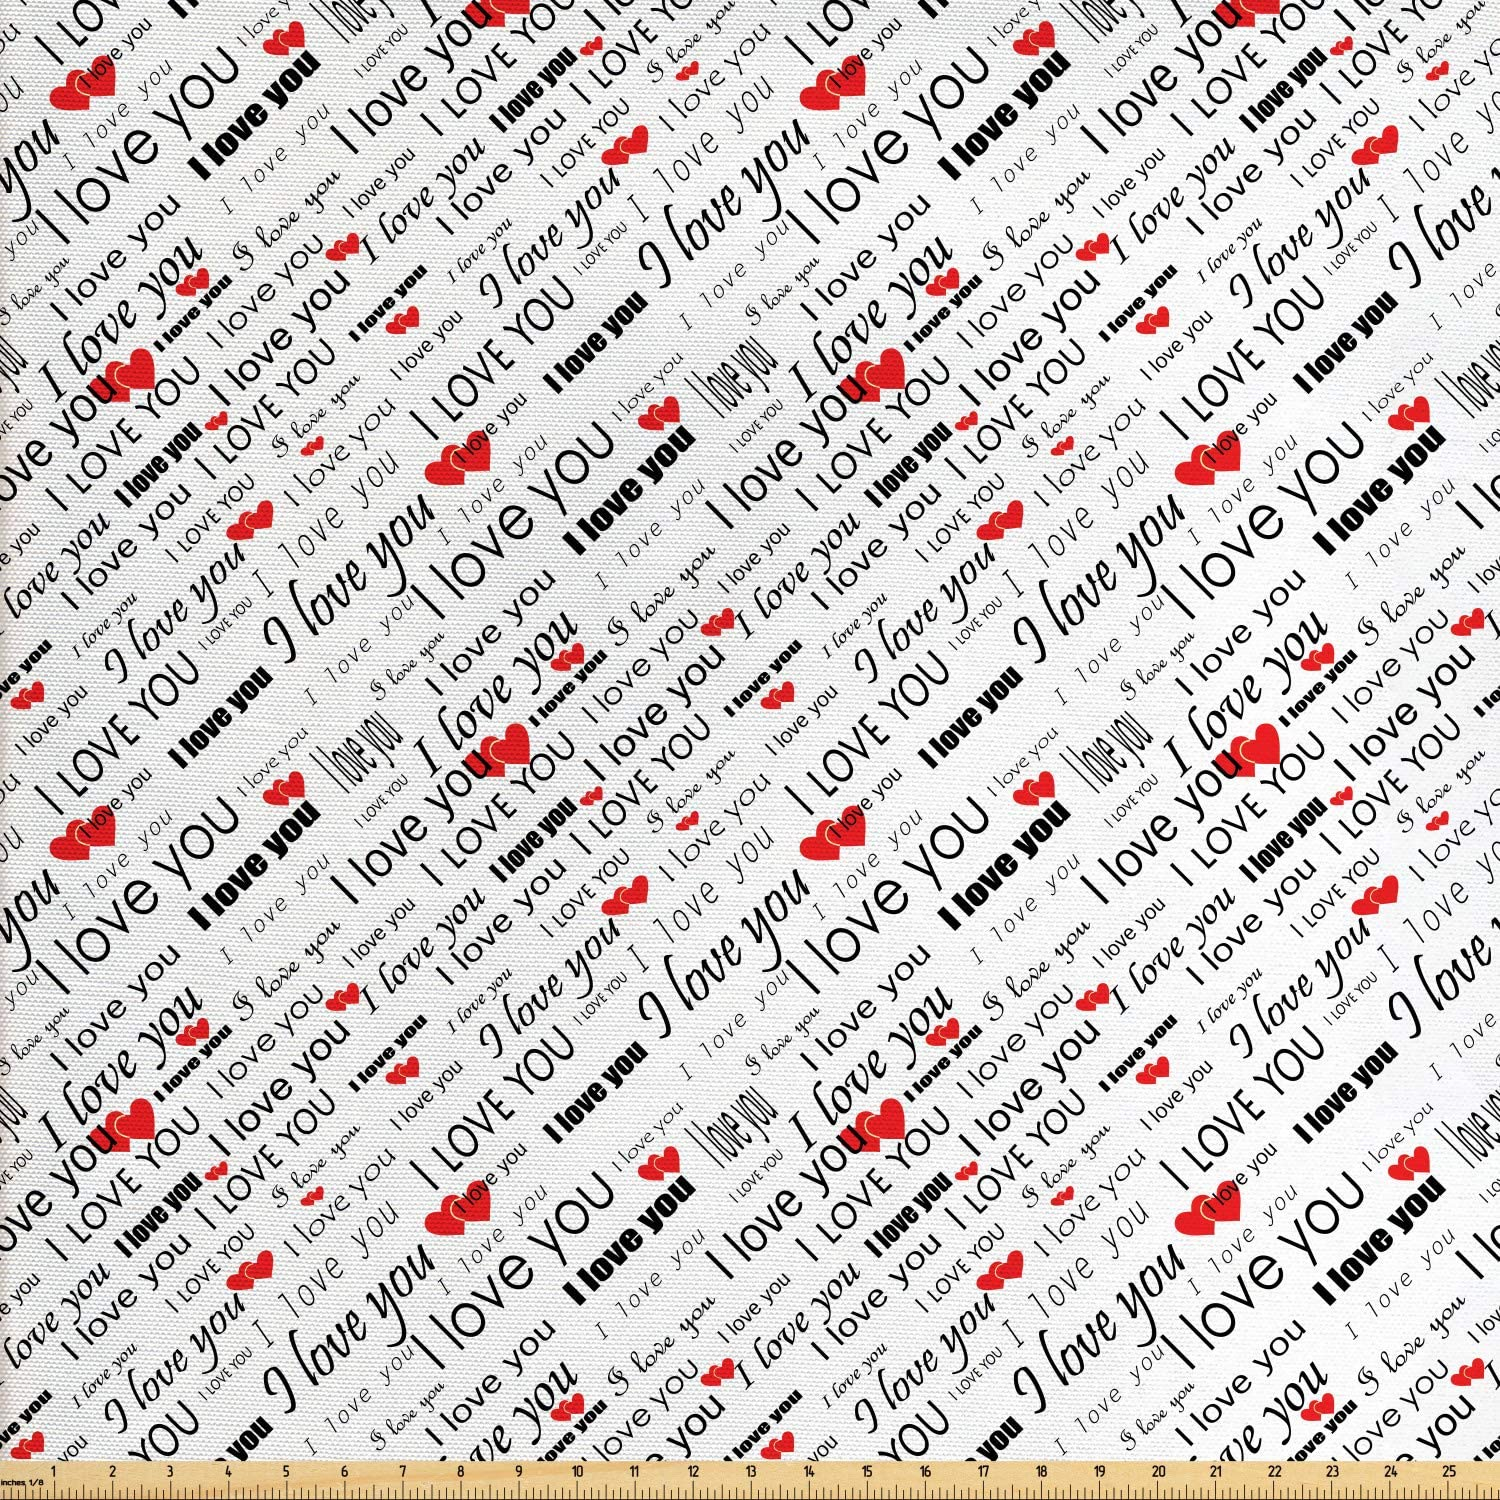 Ambesonne I Love You Fabric by The Yard, Romance Words with Hearts in Different Characters Flirt Celebration Pattern, Decorative Fabric for Upholstery and Home Accents, 1 Yard, Red Black